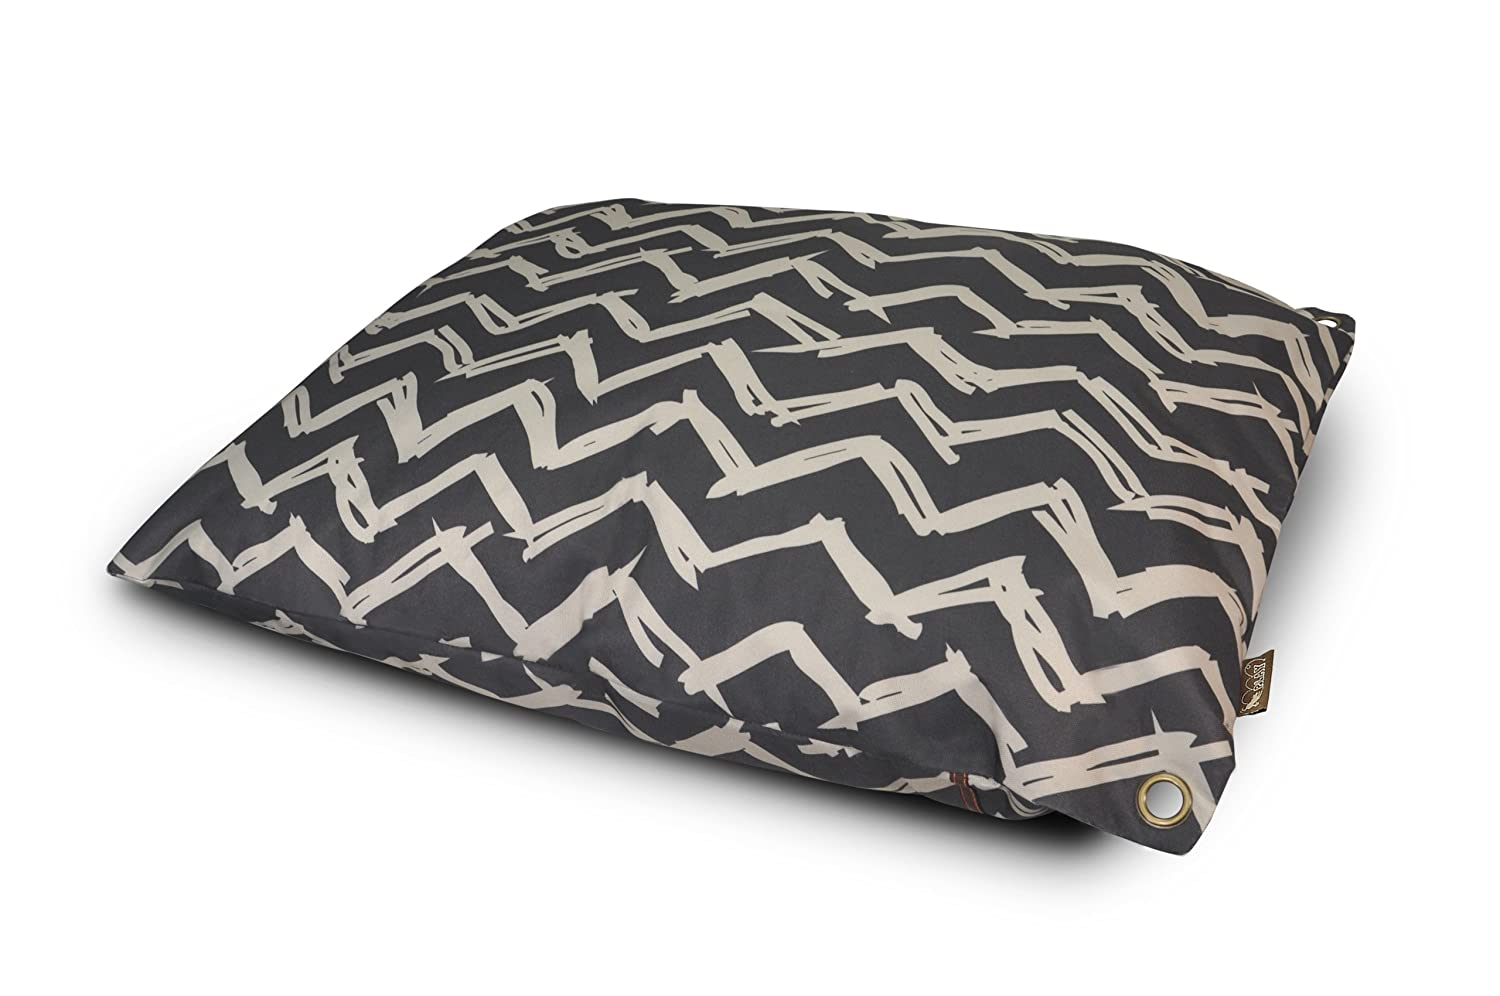 Black Small Black Small Pet Lifestyle and You Chevron Outdoor Bed, Small, Black